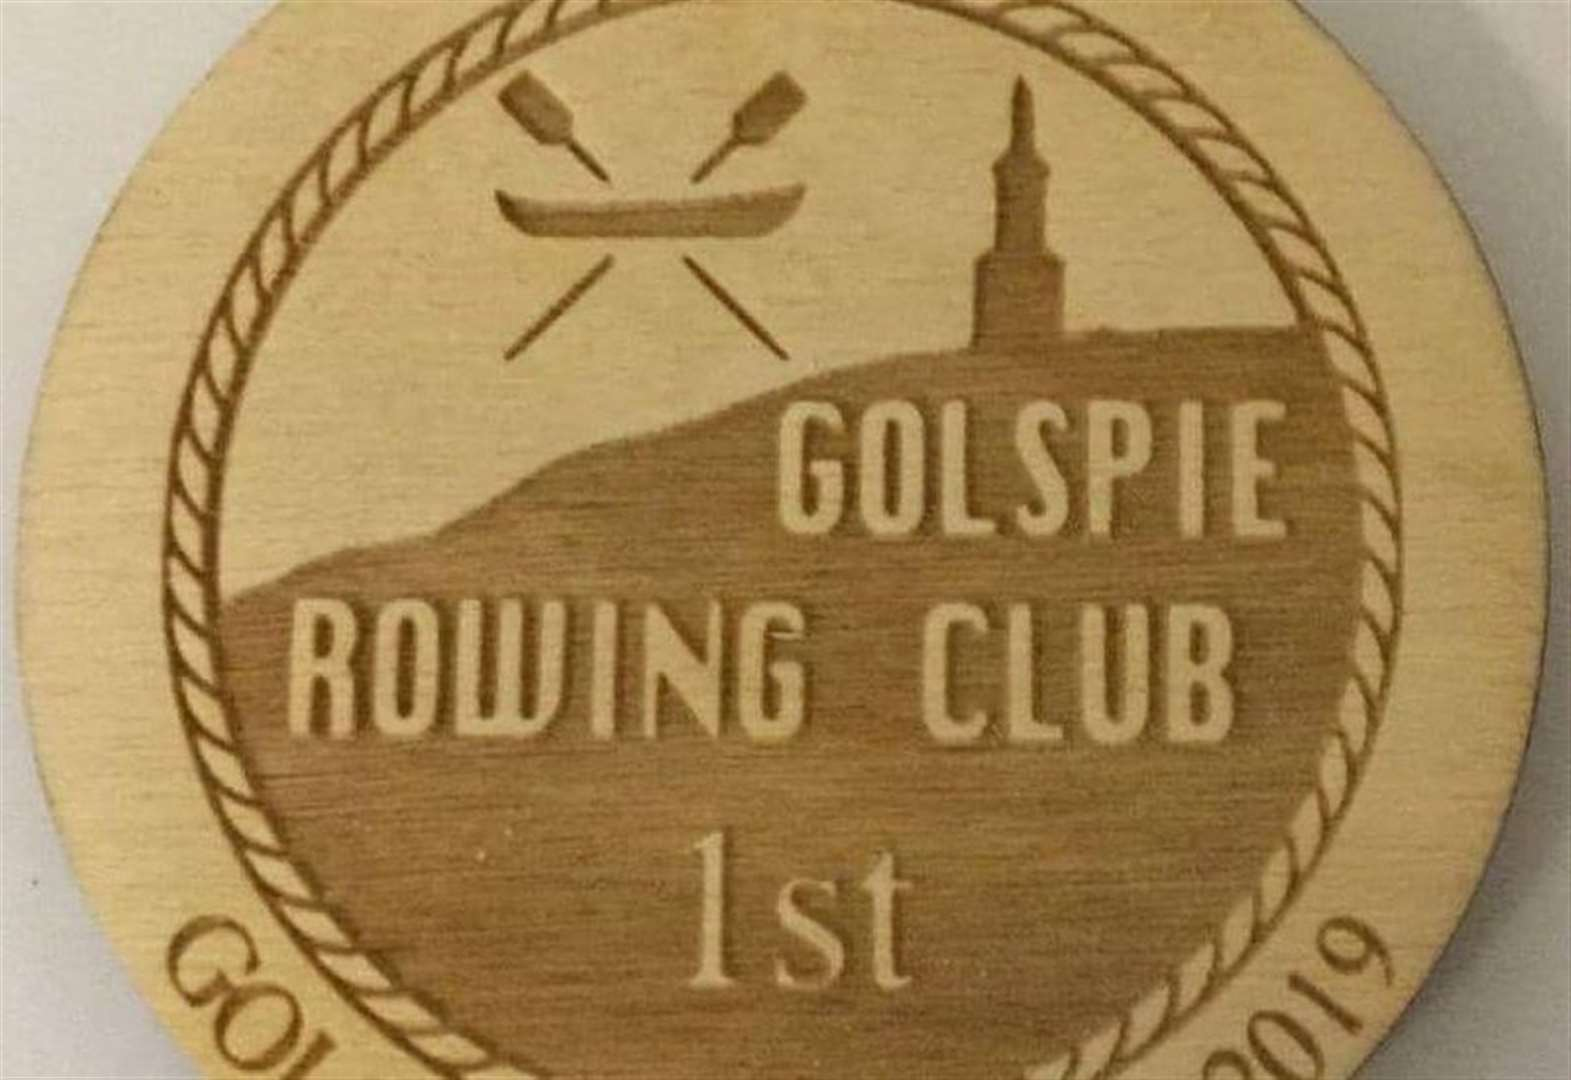 Rowing club to stage inaugural regatta